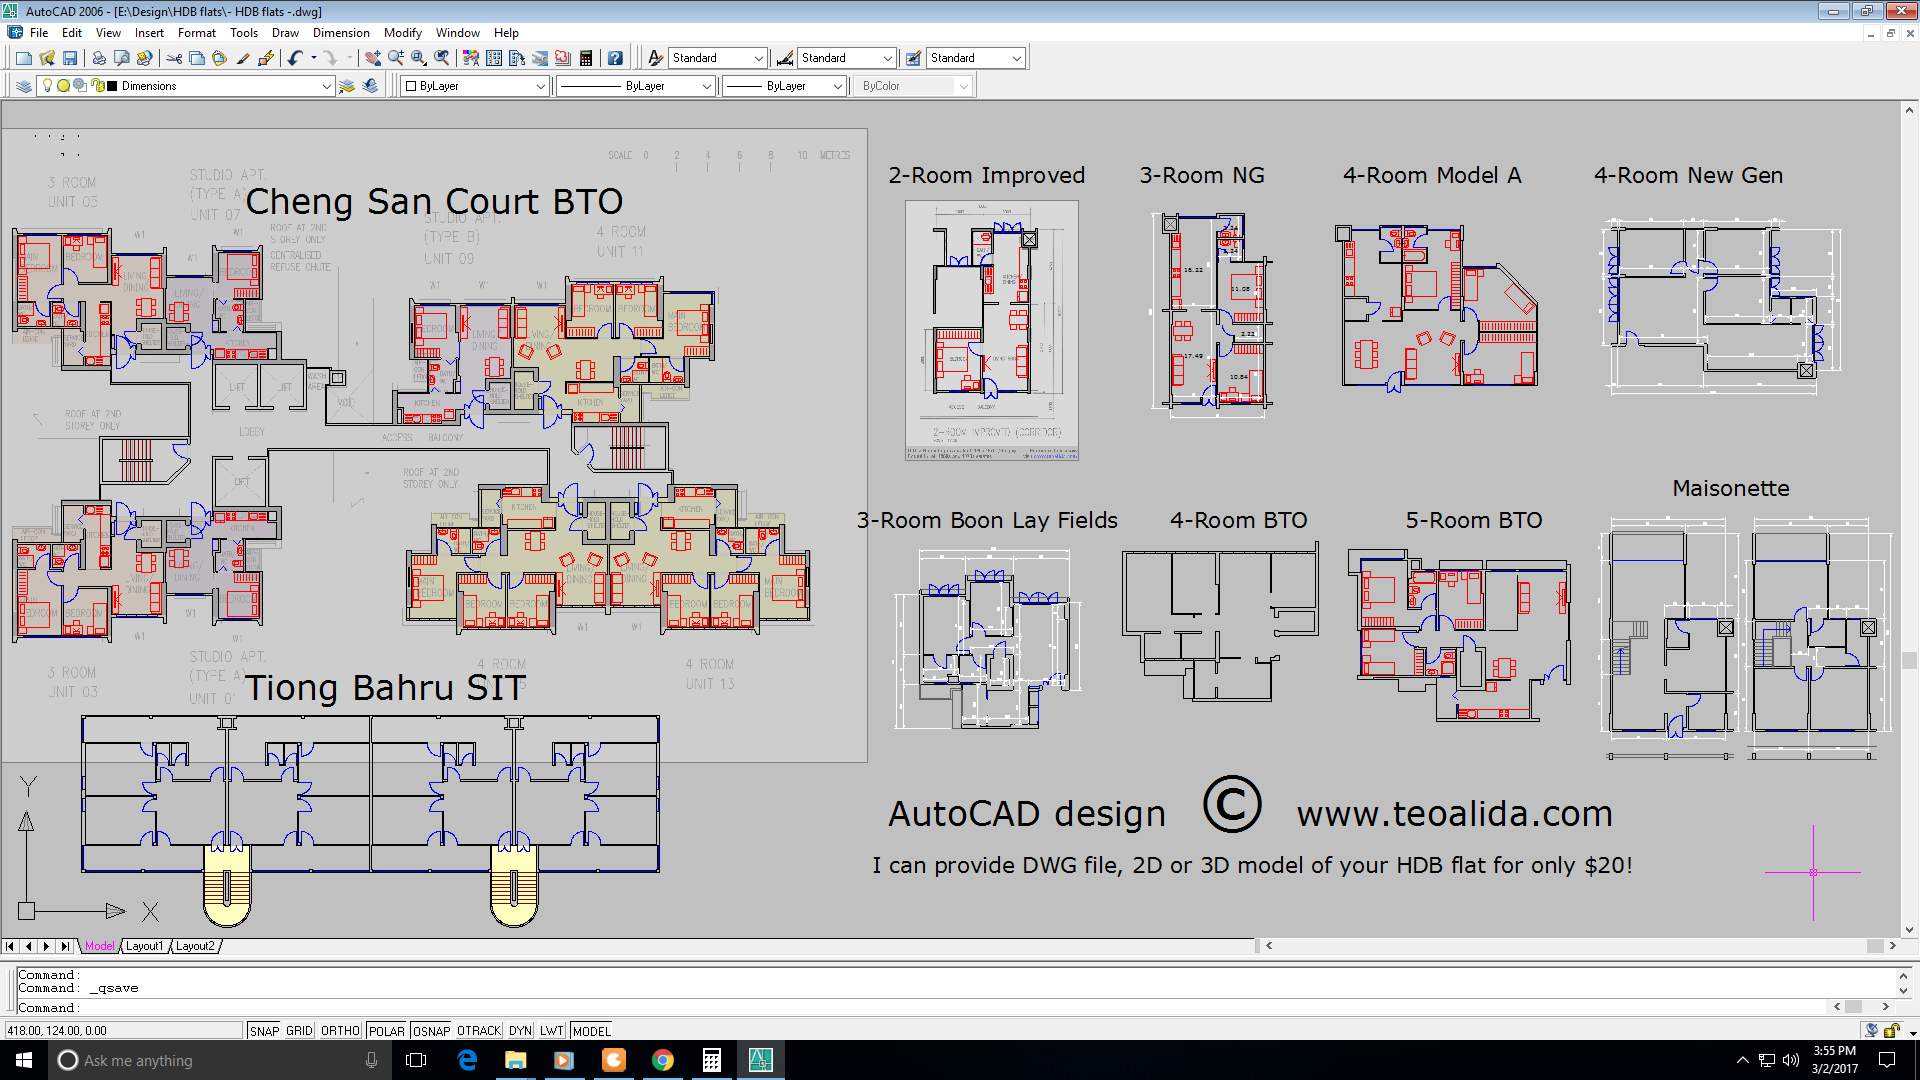 HDB floor plans AutoCAD DWG file